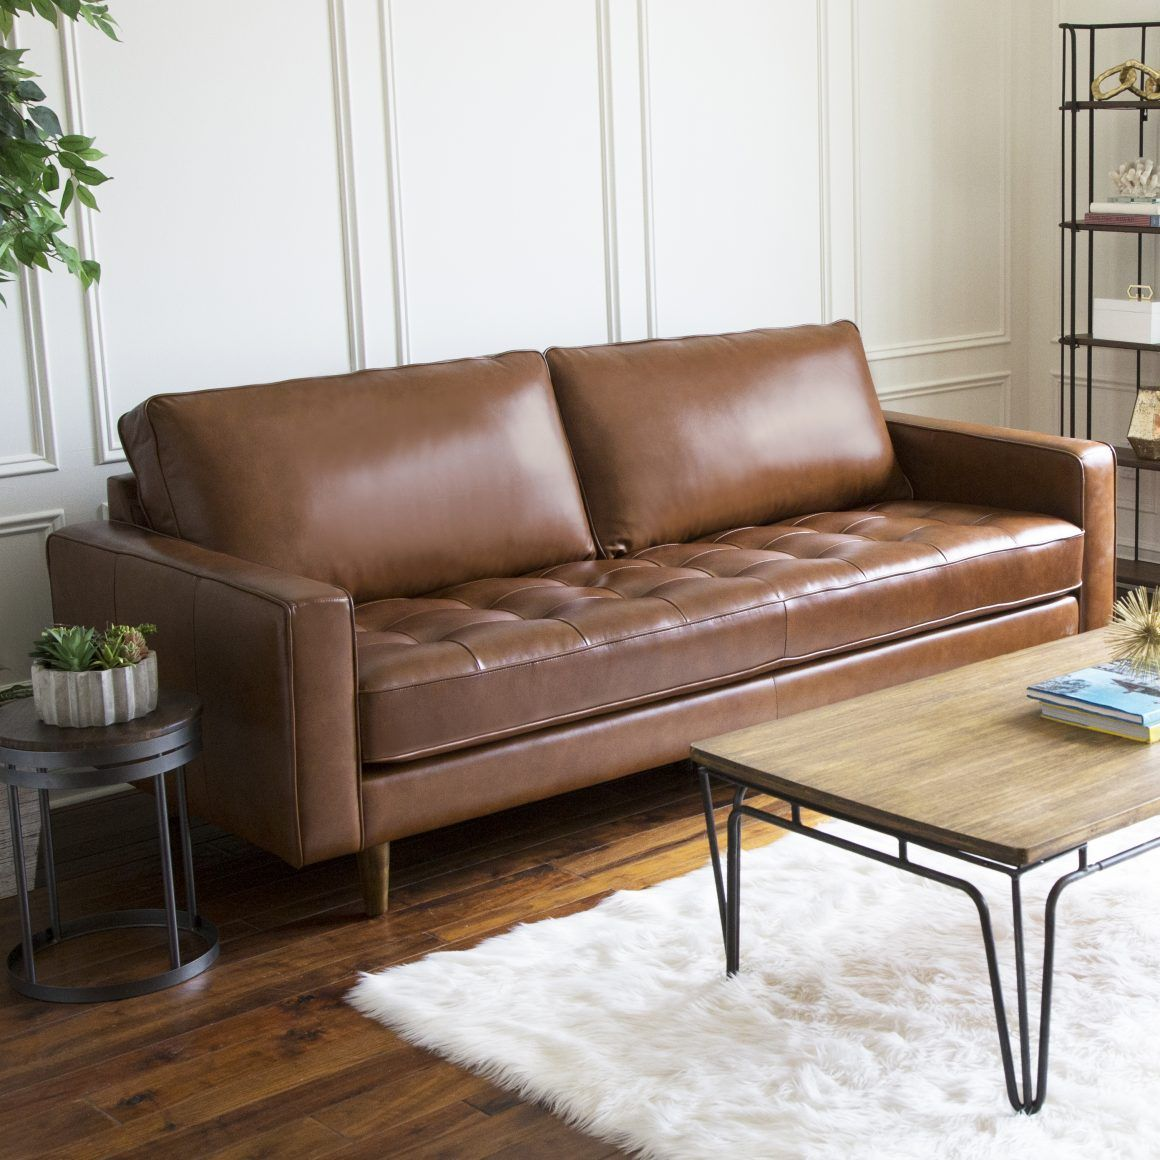 9 Affordable Leather Couches For 2020 With Free Shipping In 2020 Top Grain Leather Sofa Leather Sofa Top Grain Leather